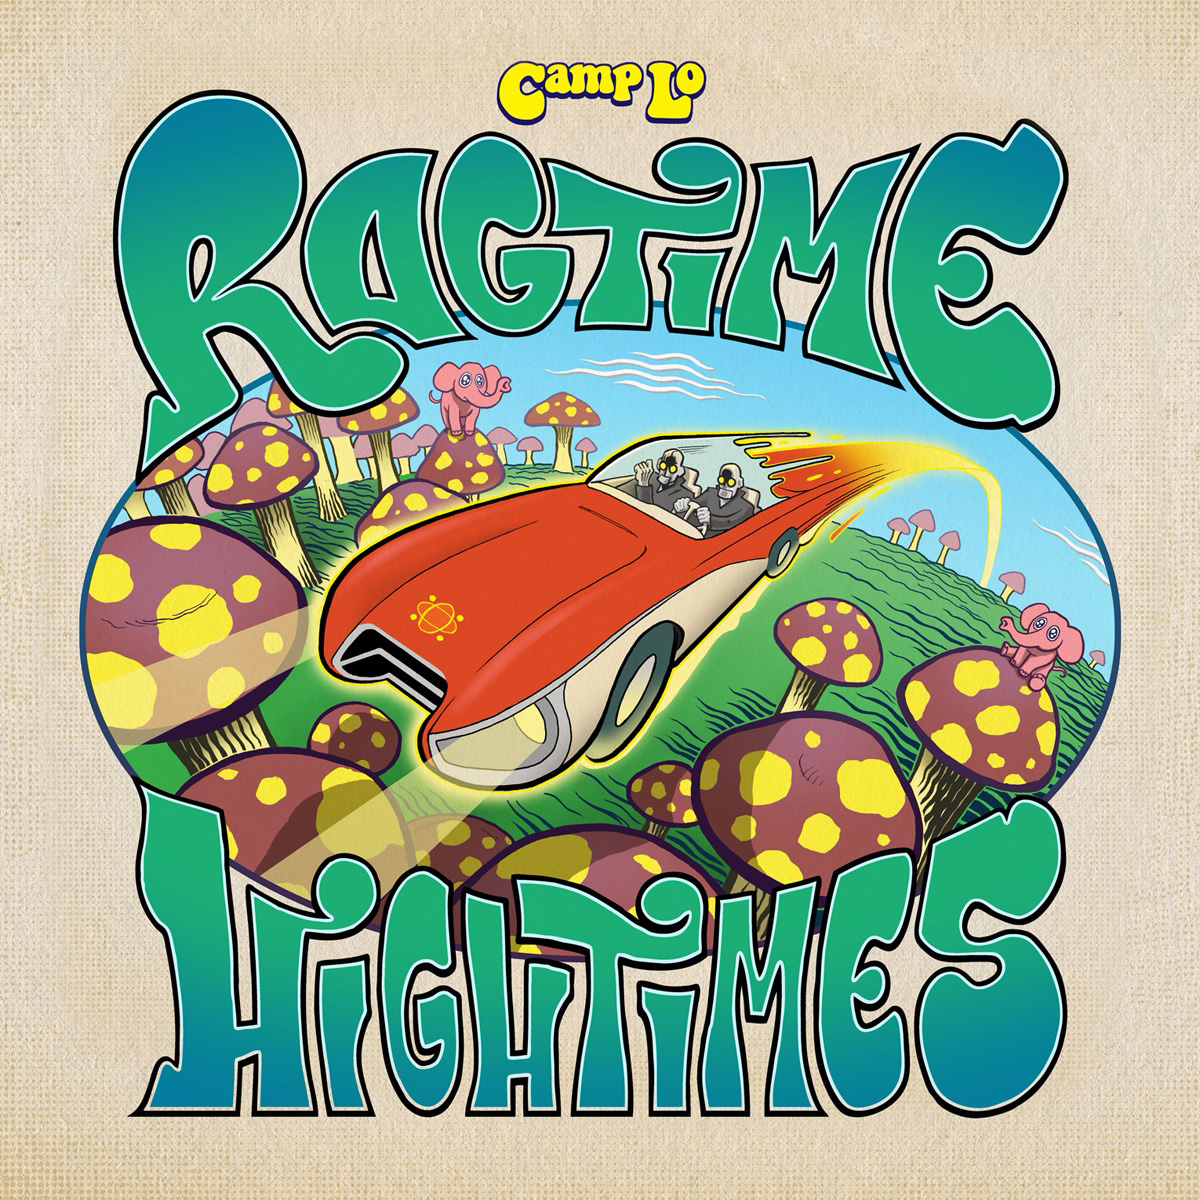 Camp_lo_-_ragtime_hightimes